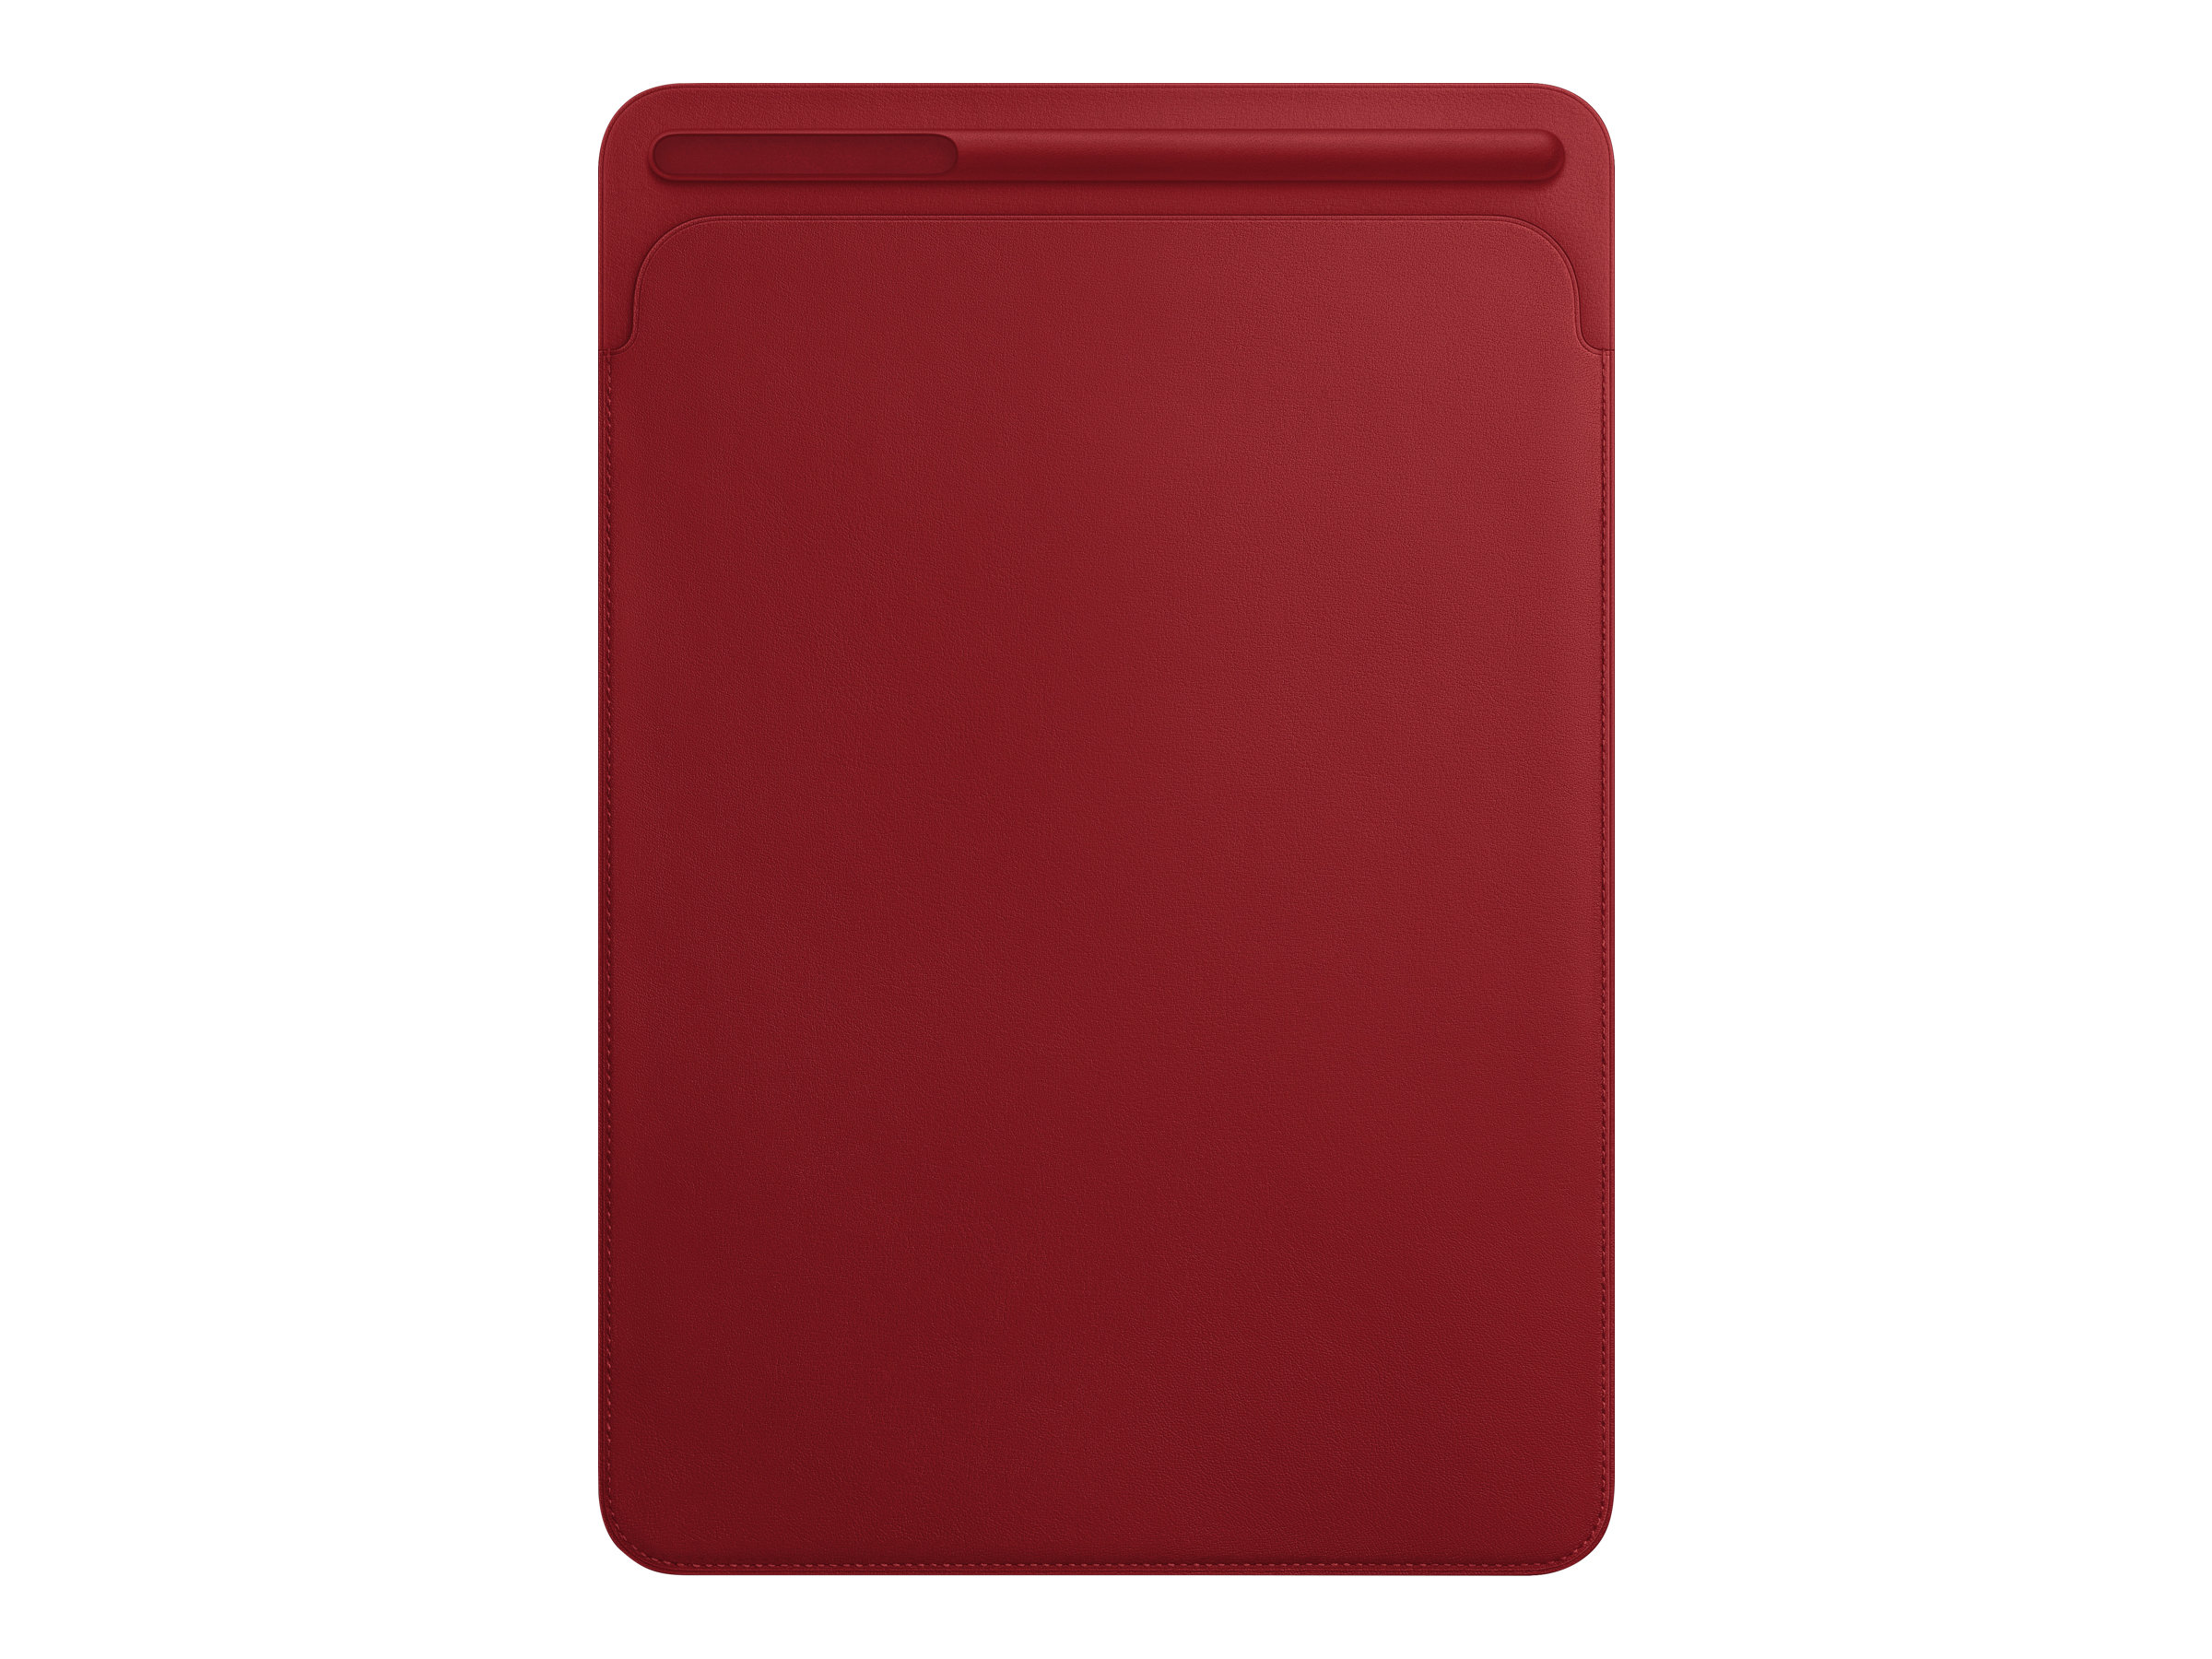 Product red schutzhuelle fuer tablet leder rot 10 5 fuer 10 5 inch ipad pro 8072622 mr5l2zm a